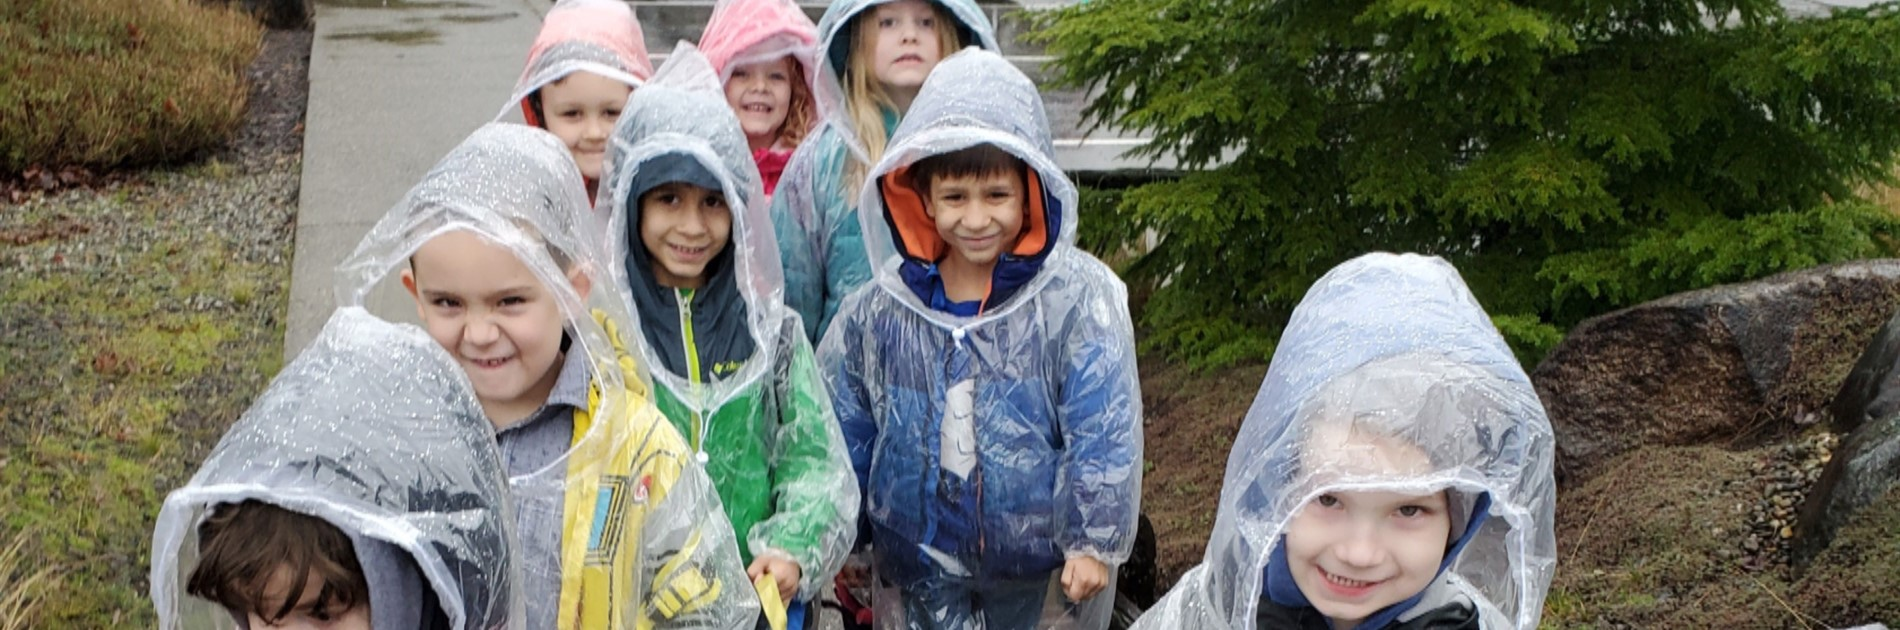 Kindergarteners walking in the rain.